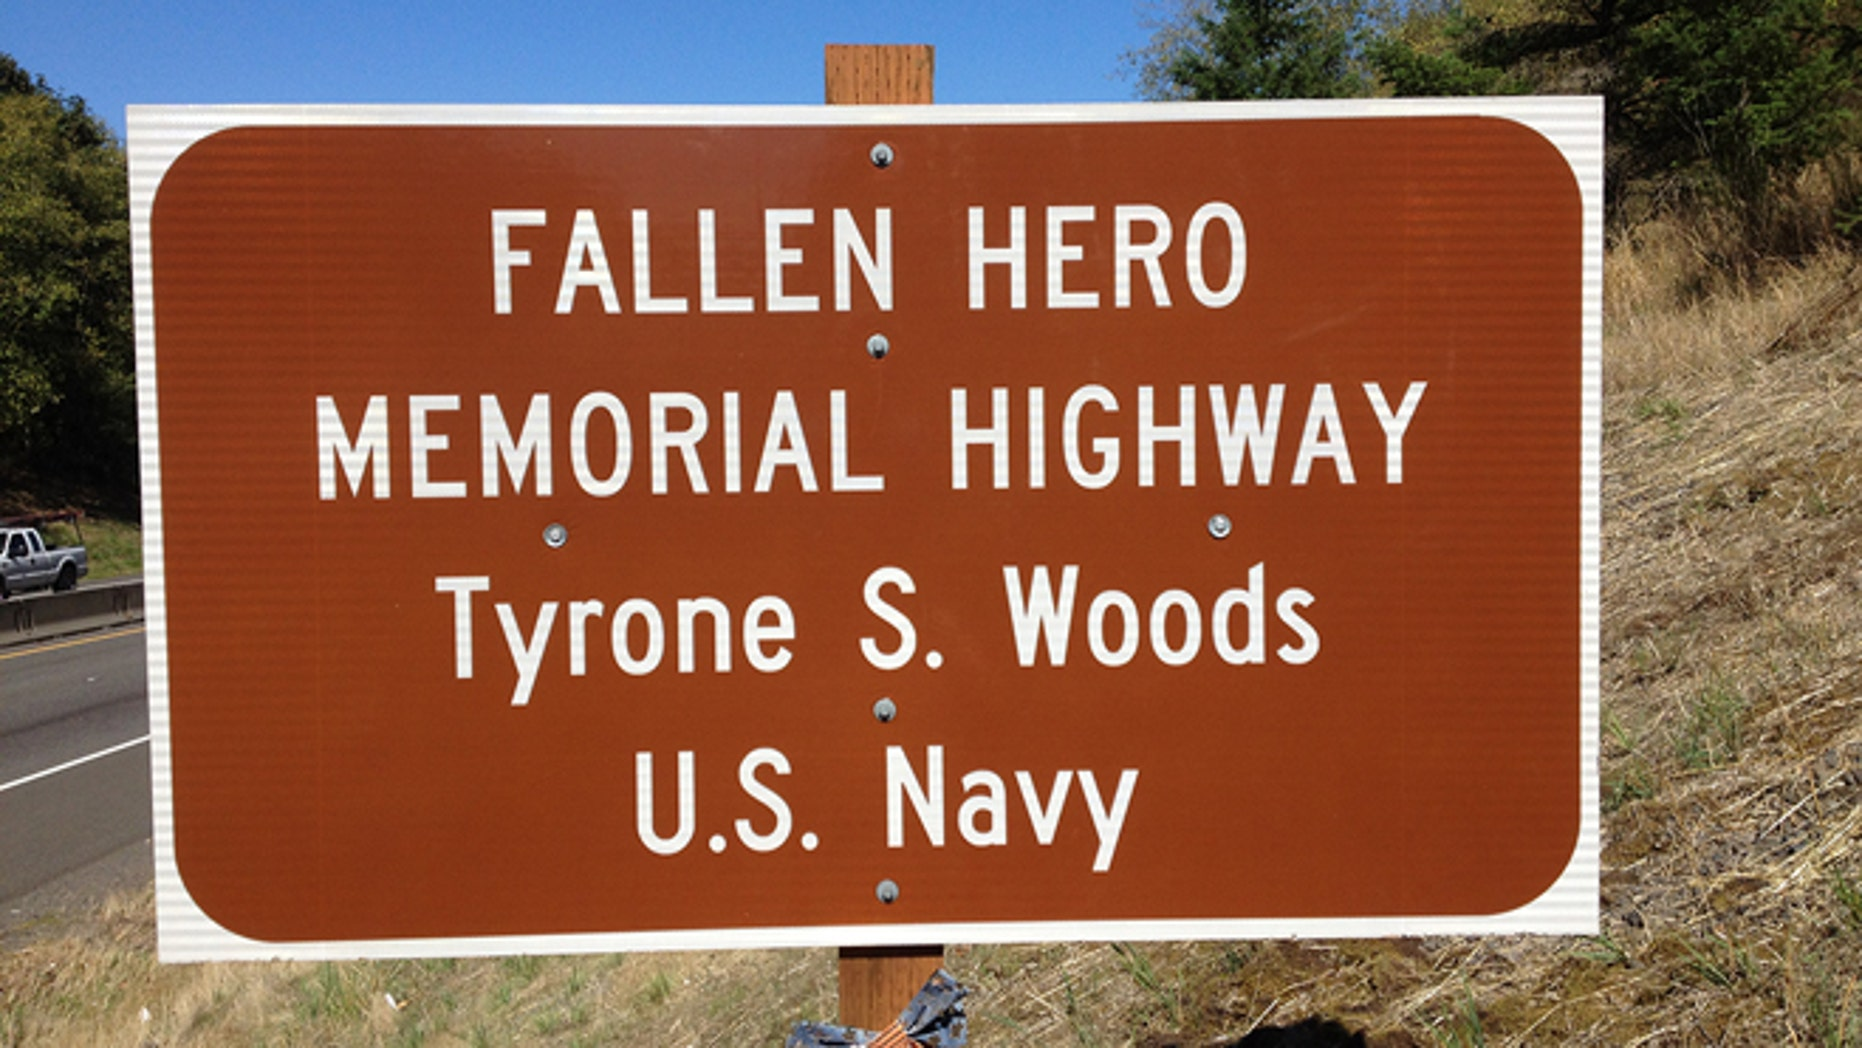 An Oregon sign reflects a stretch of highway dedicated in memory of Tyrone Woods, who was killed in the 2012 Benghazi attack.